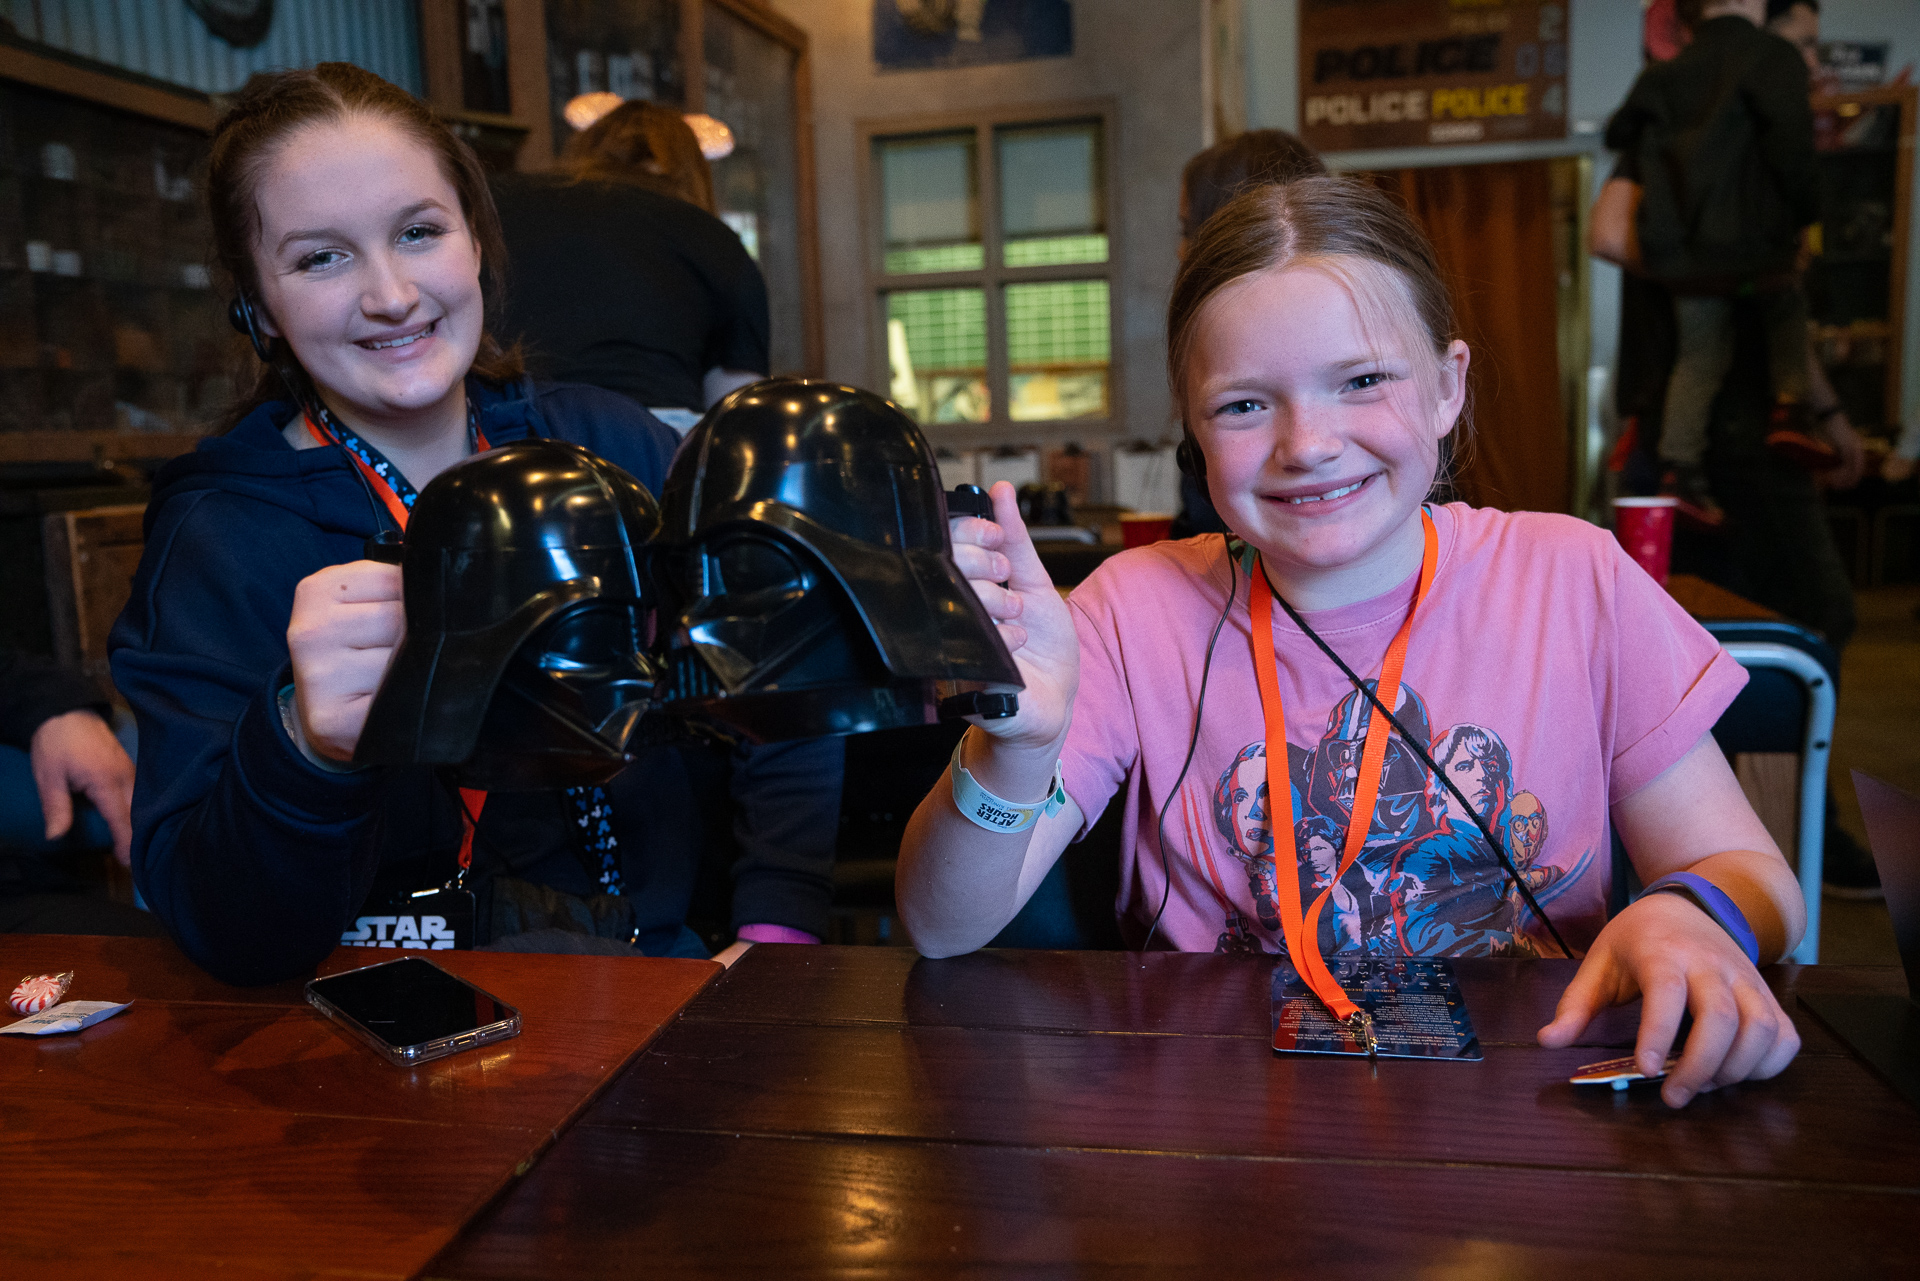 Two girls posing with the souvenir Darth Vader mugs that come with the VIP Star Wars tour at Disney's Hollywood Studios at Walt Disney World